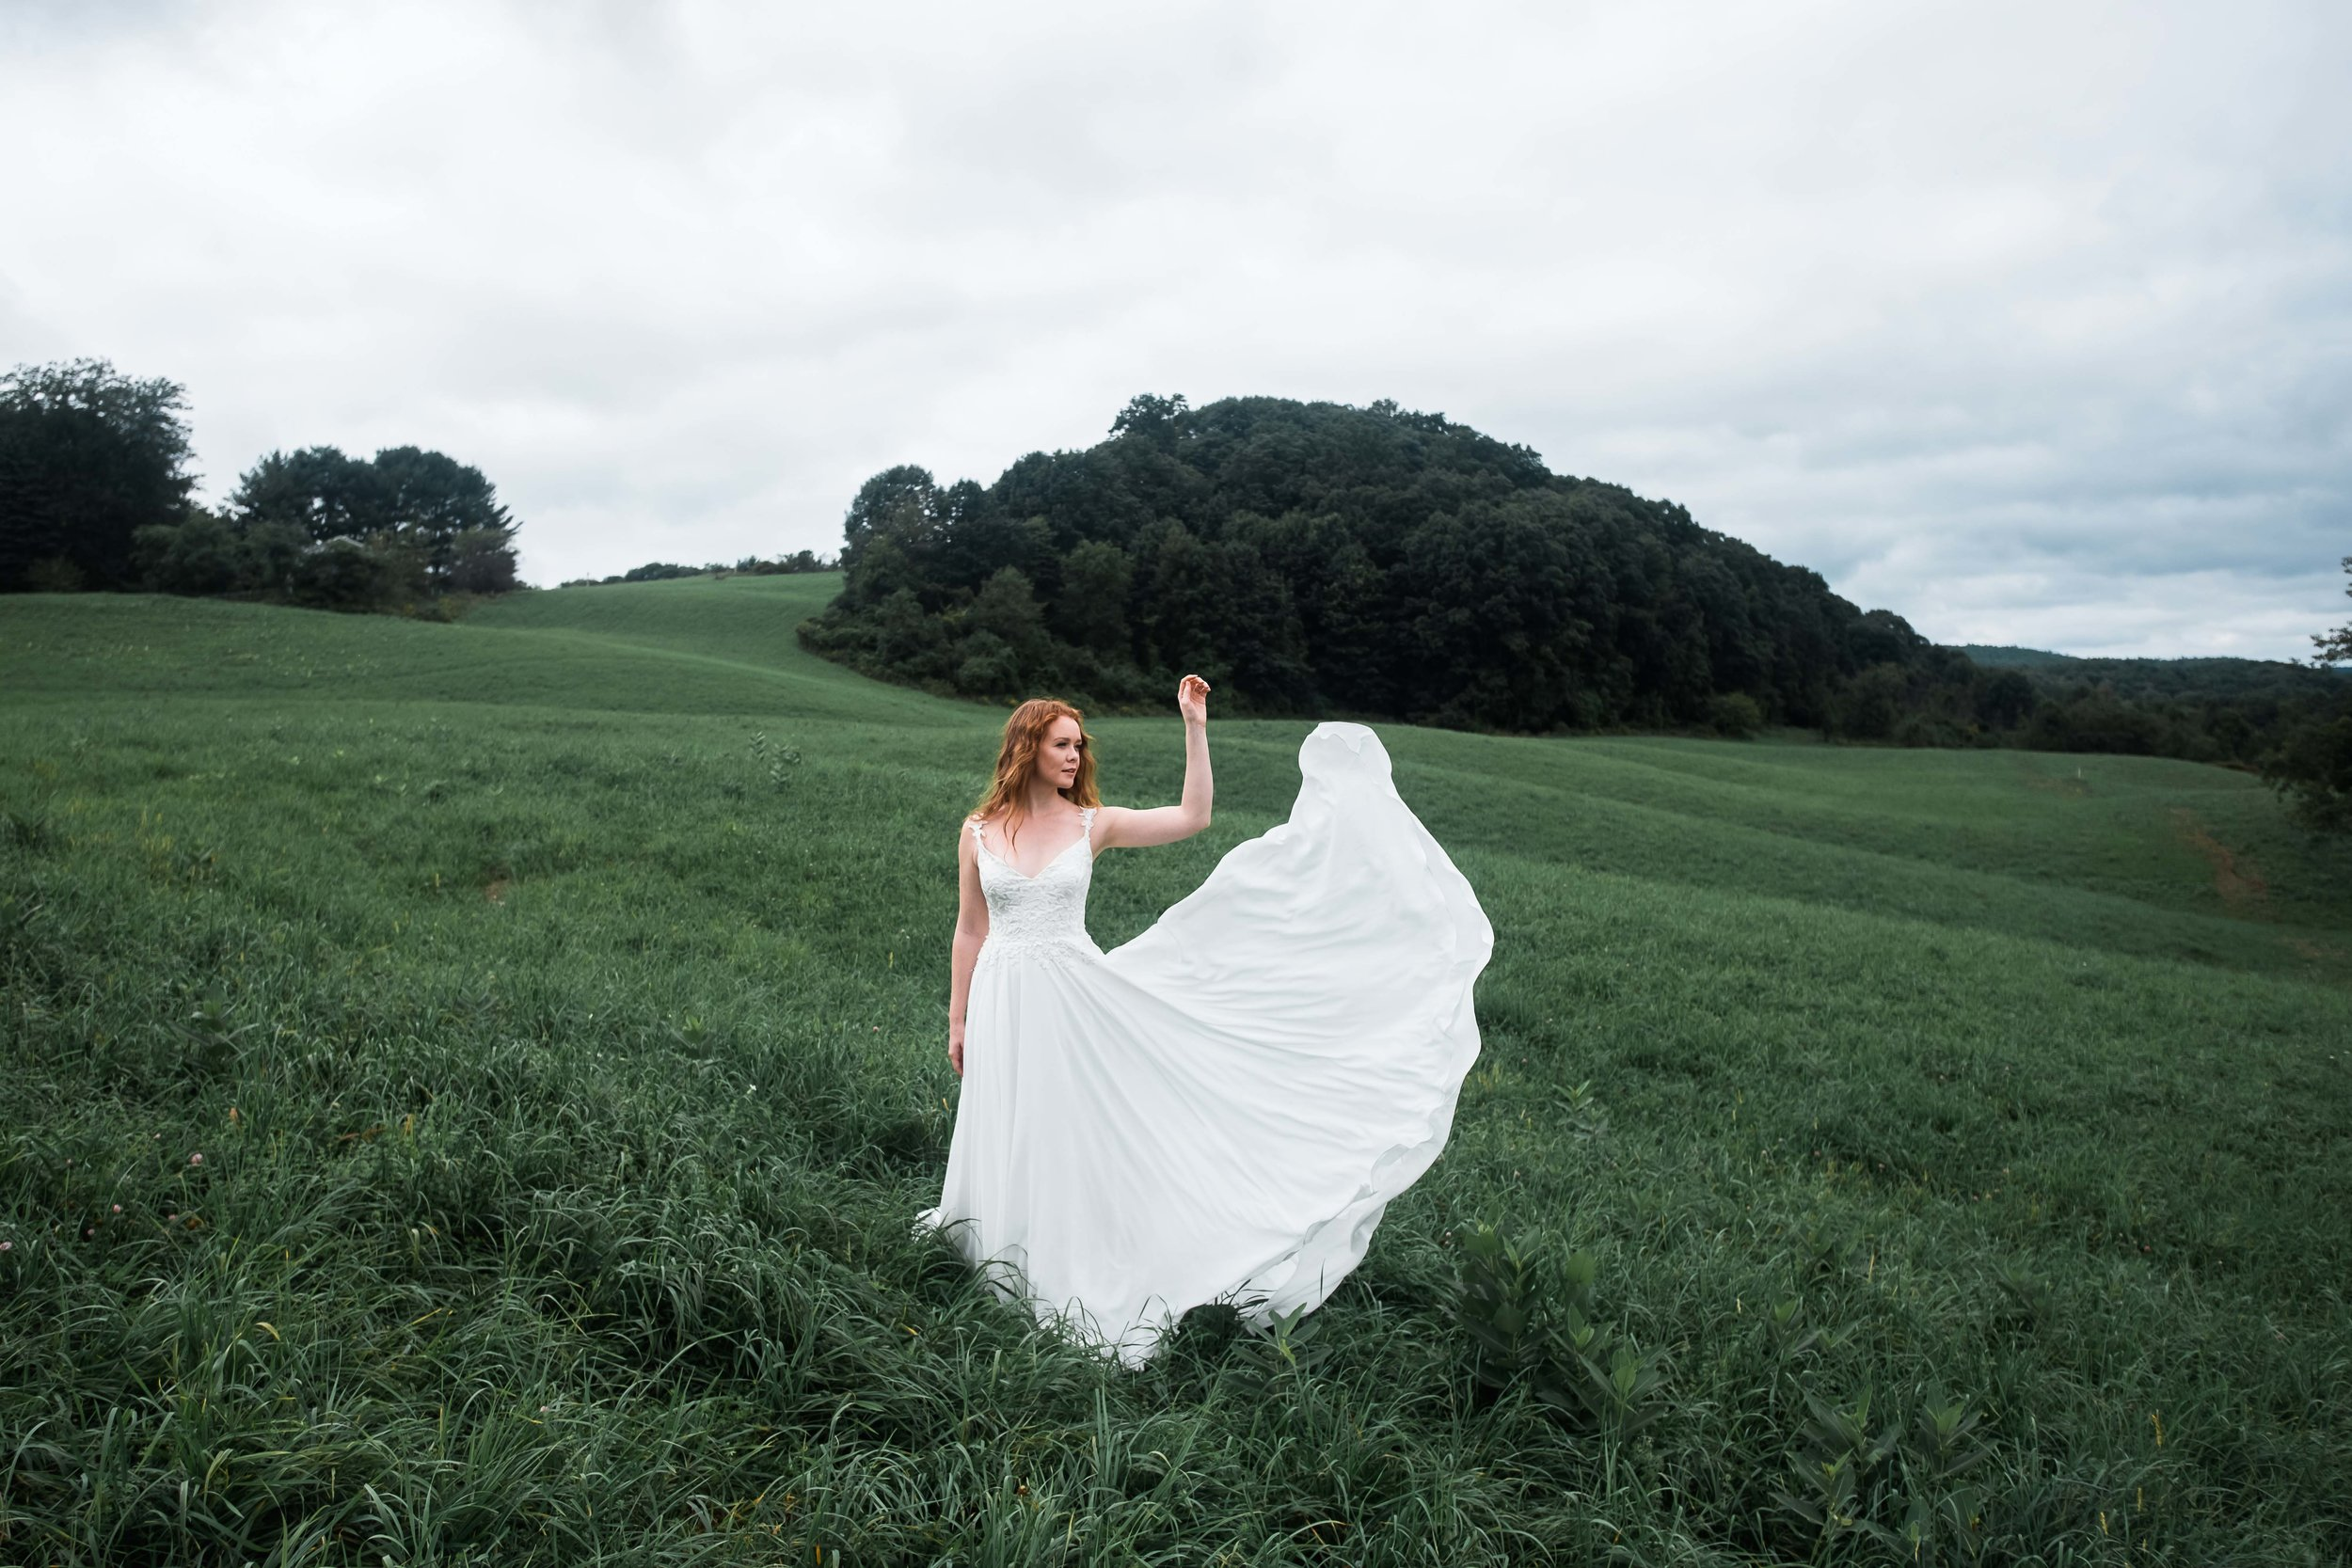 WSPCo-Gather-Greene-Rebecca-Schoneveld-Bridal-435+copy.jpg